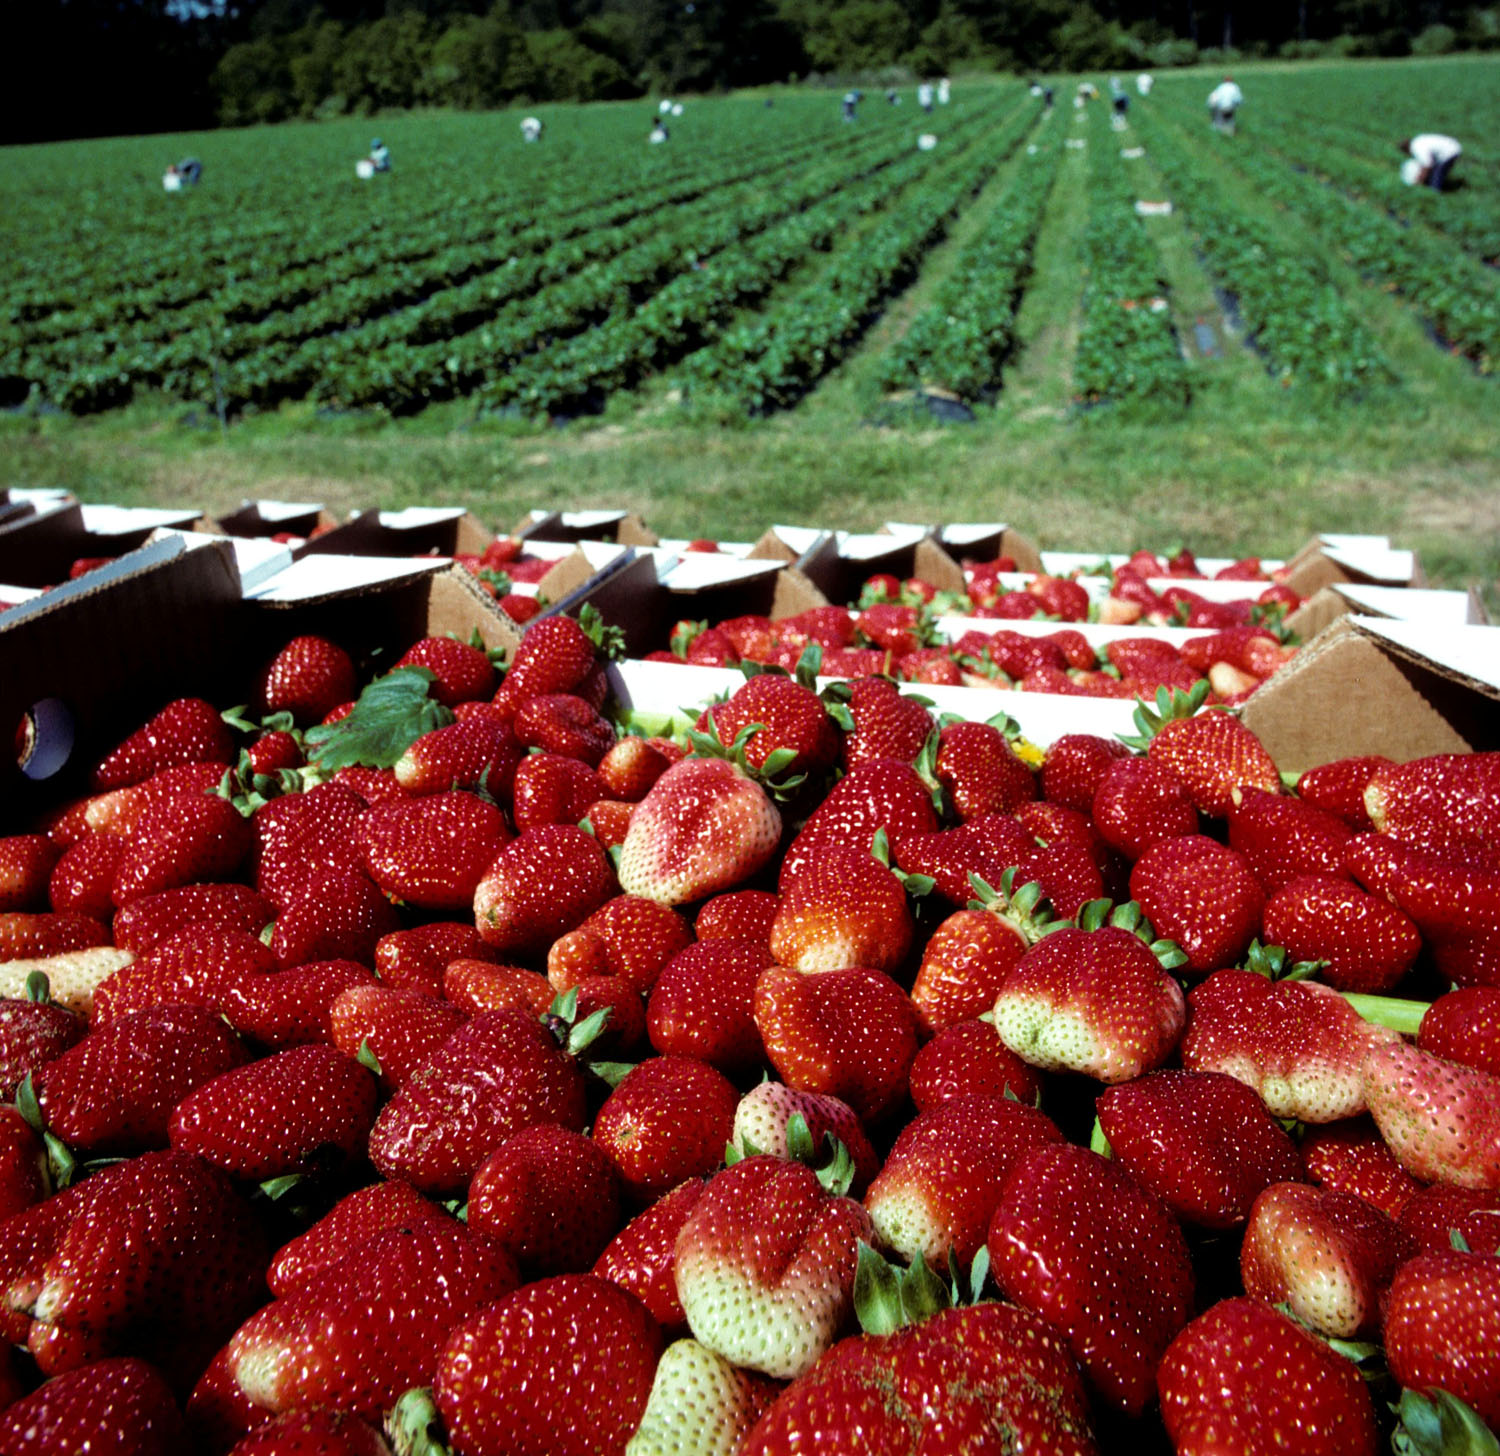 Cold snap will delay strawberries, increase cost